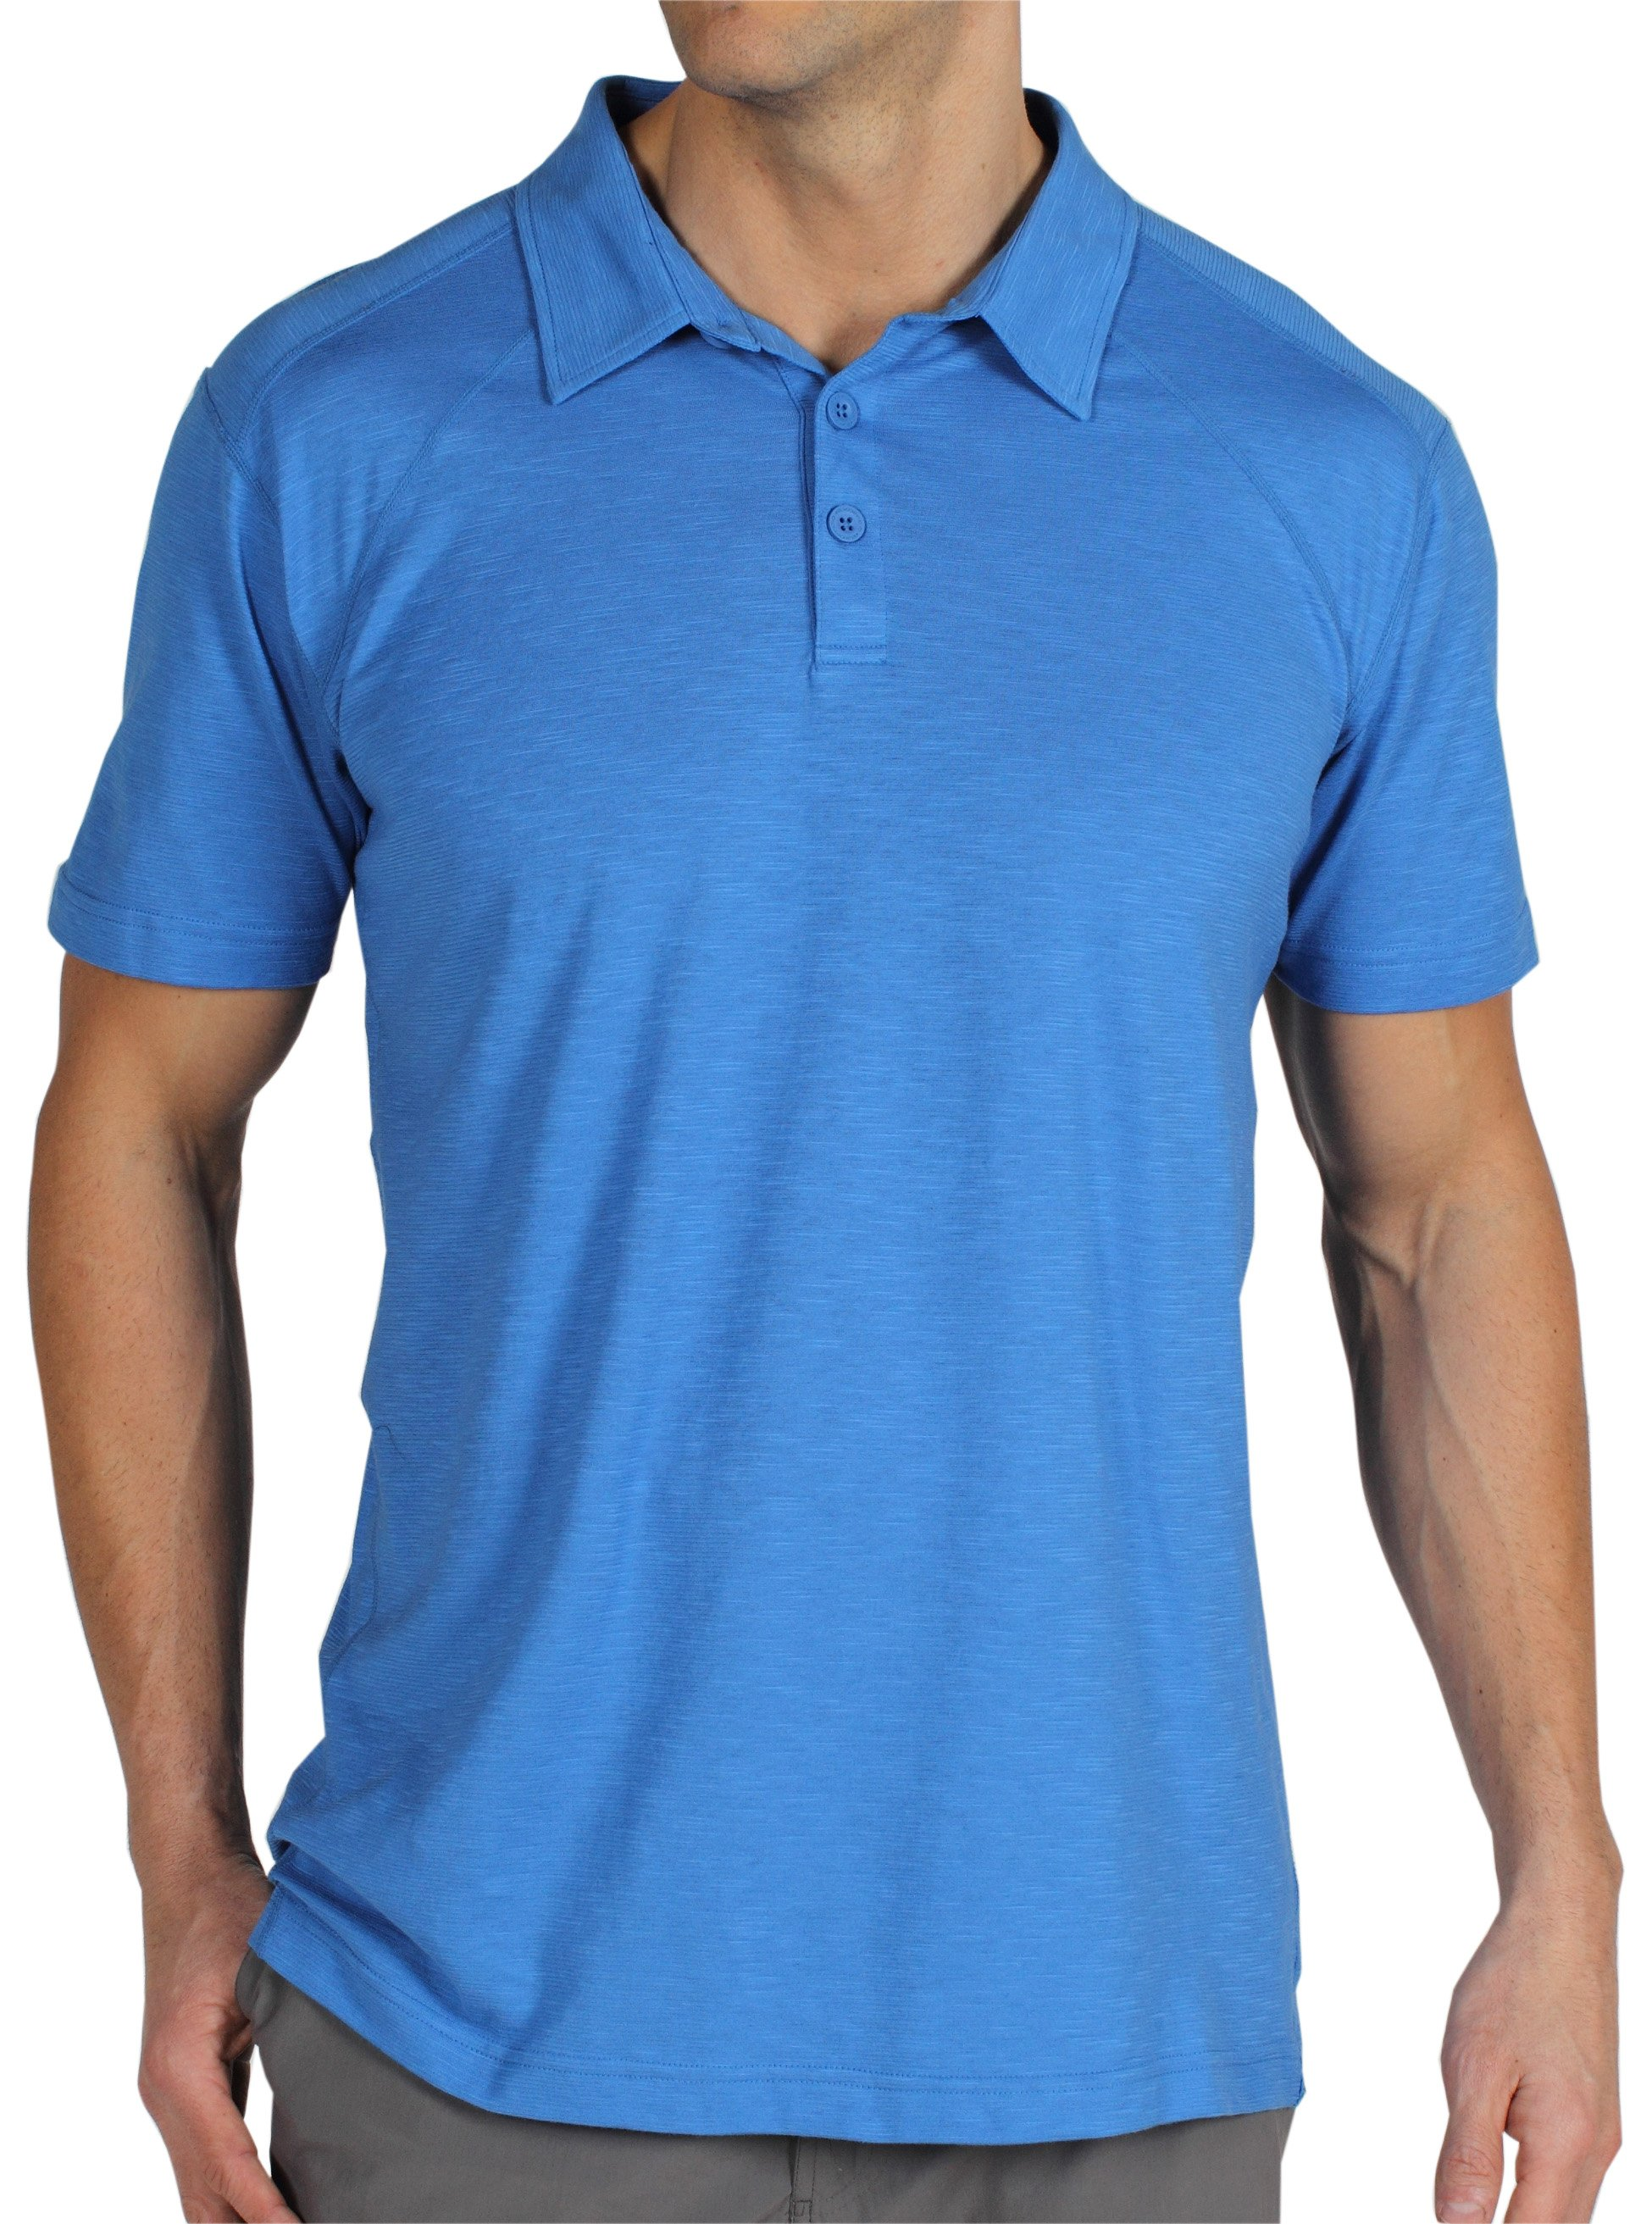 Men's ExO Dri Carbonite Polo